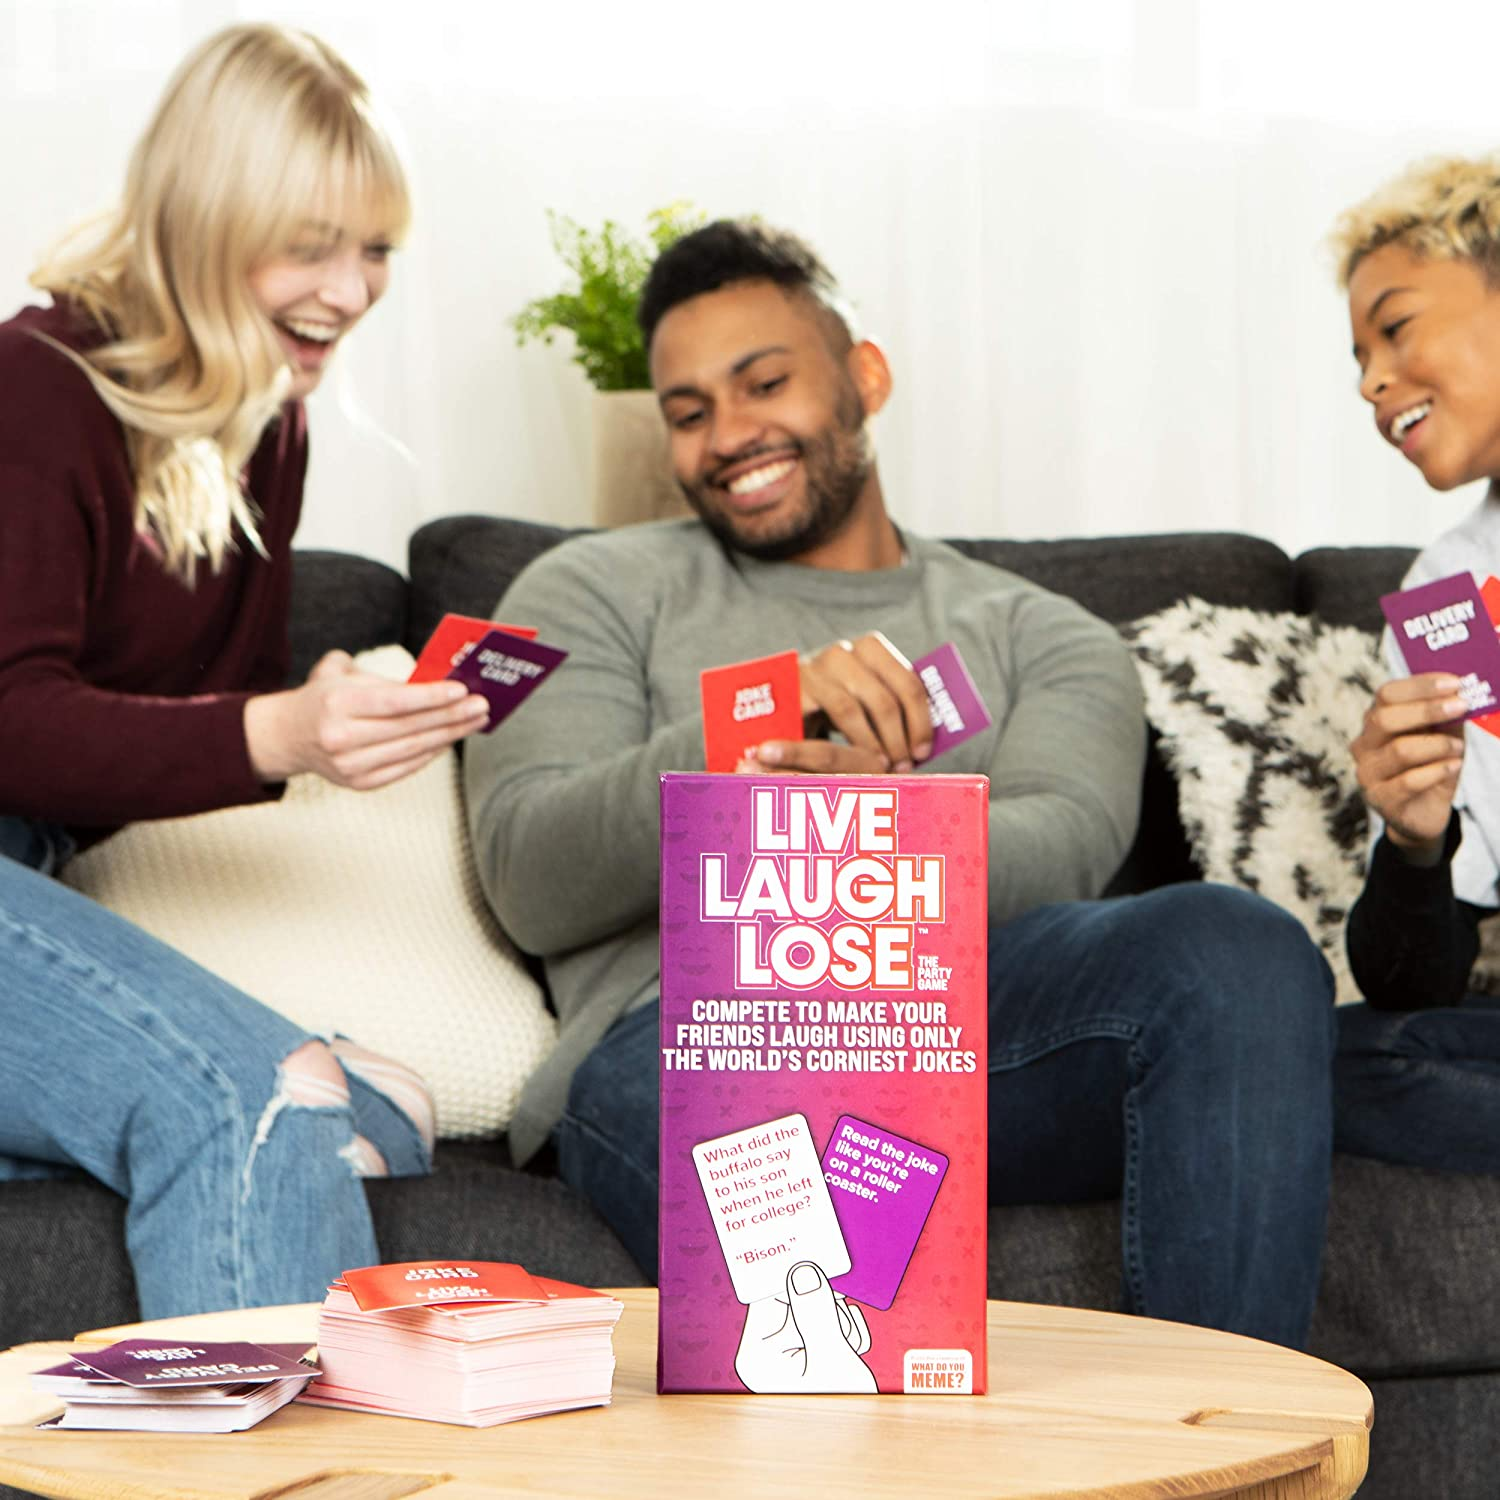 Live Laugh Lose Game - Featured image. Enjoying the party card game